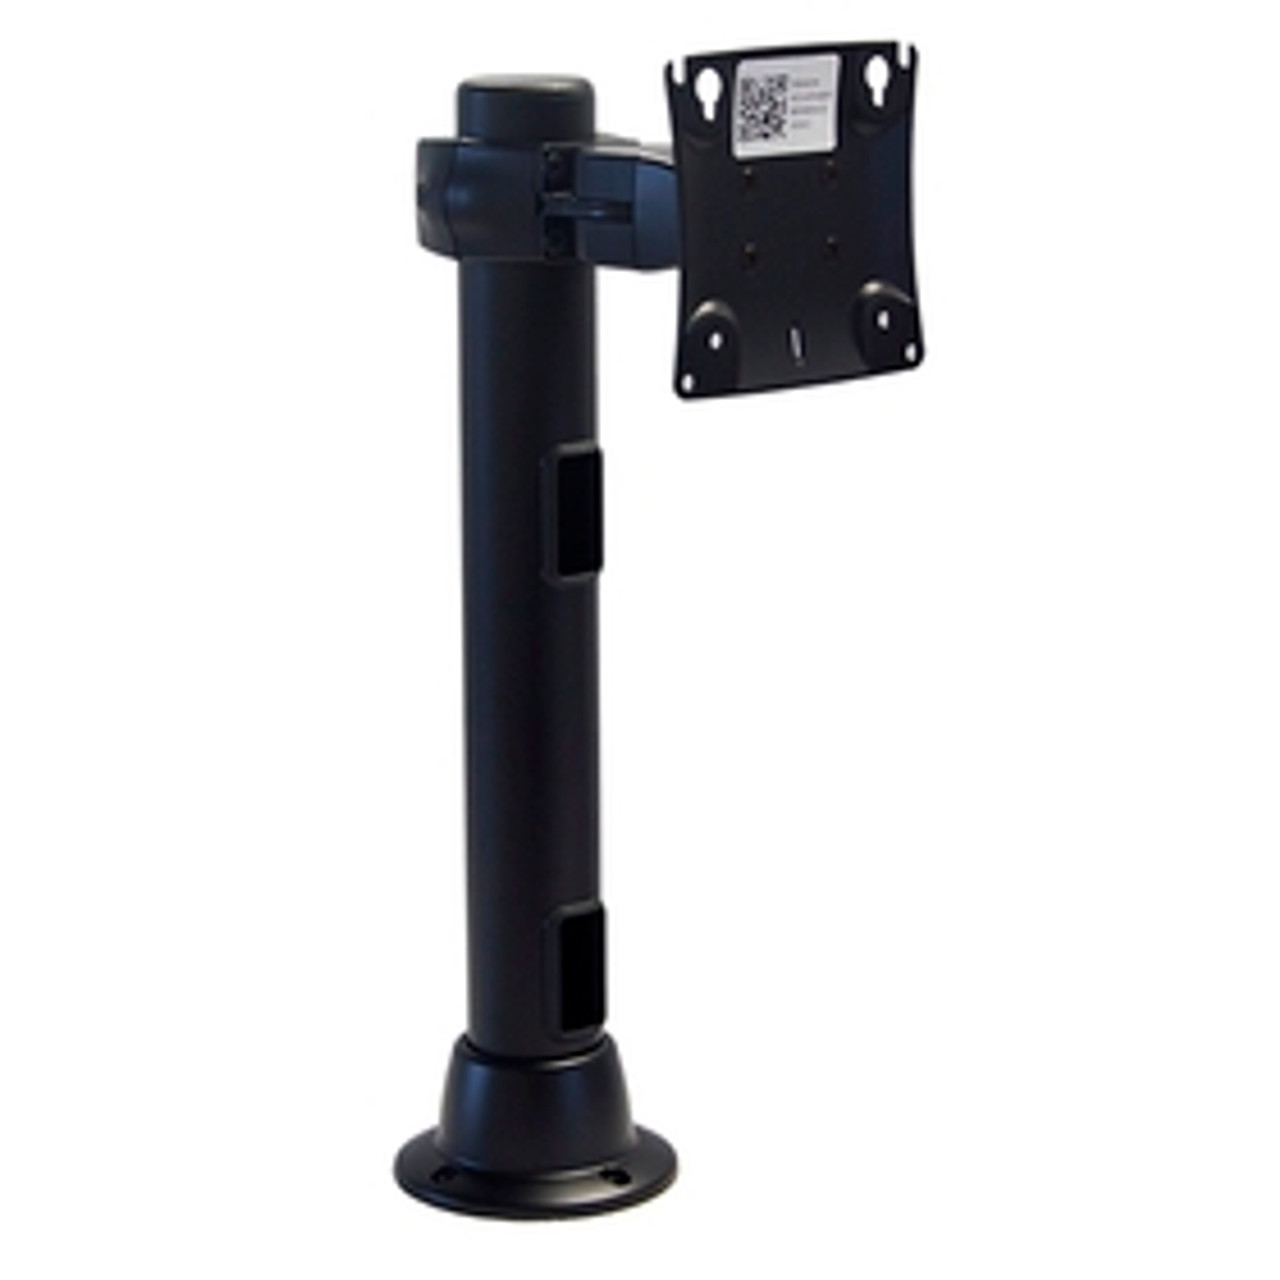 POS Preconfigured Monitor Mount Double Pivot Grommet 16 inch Pole